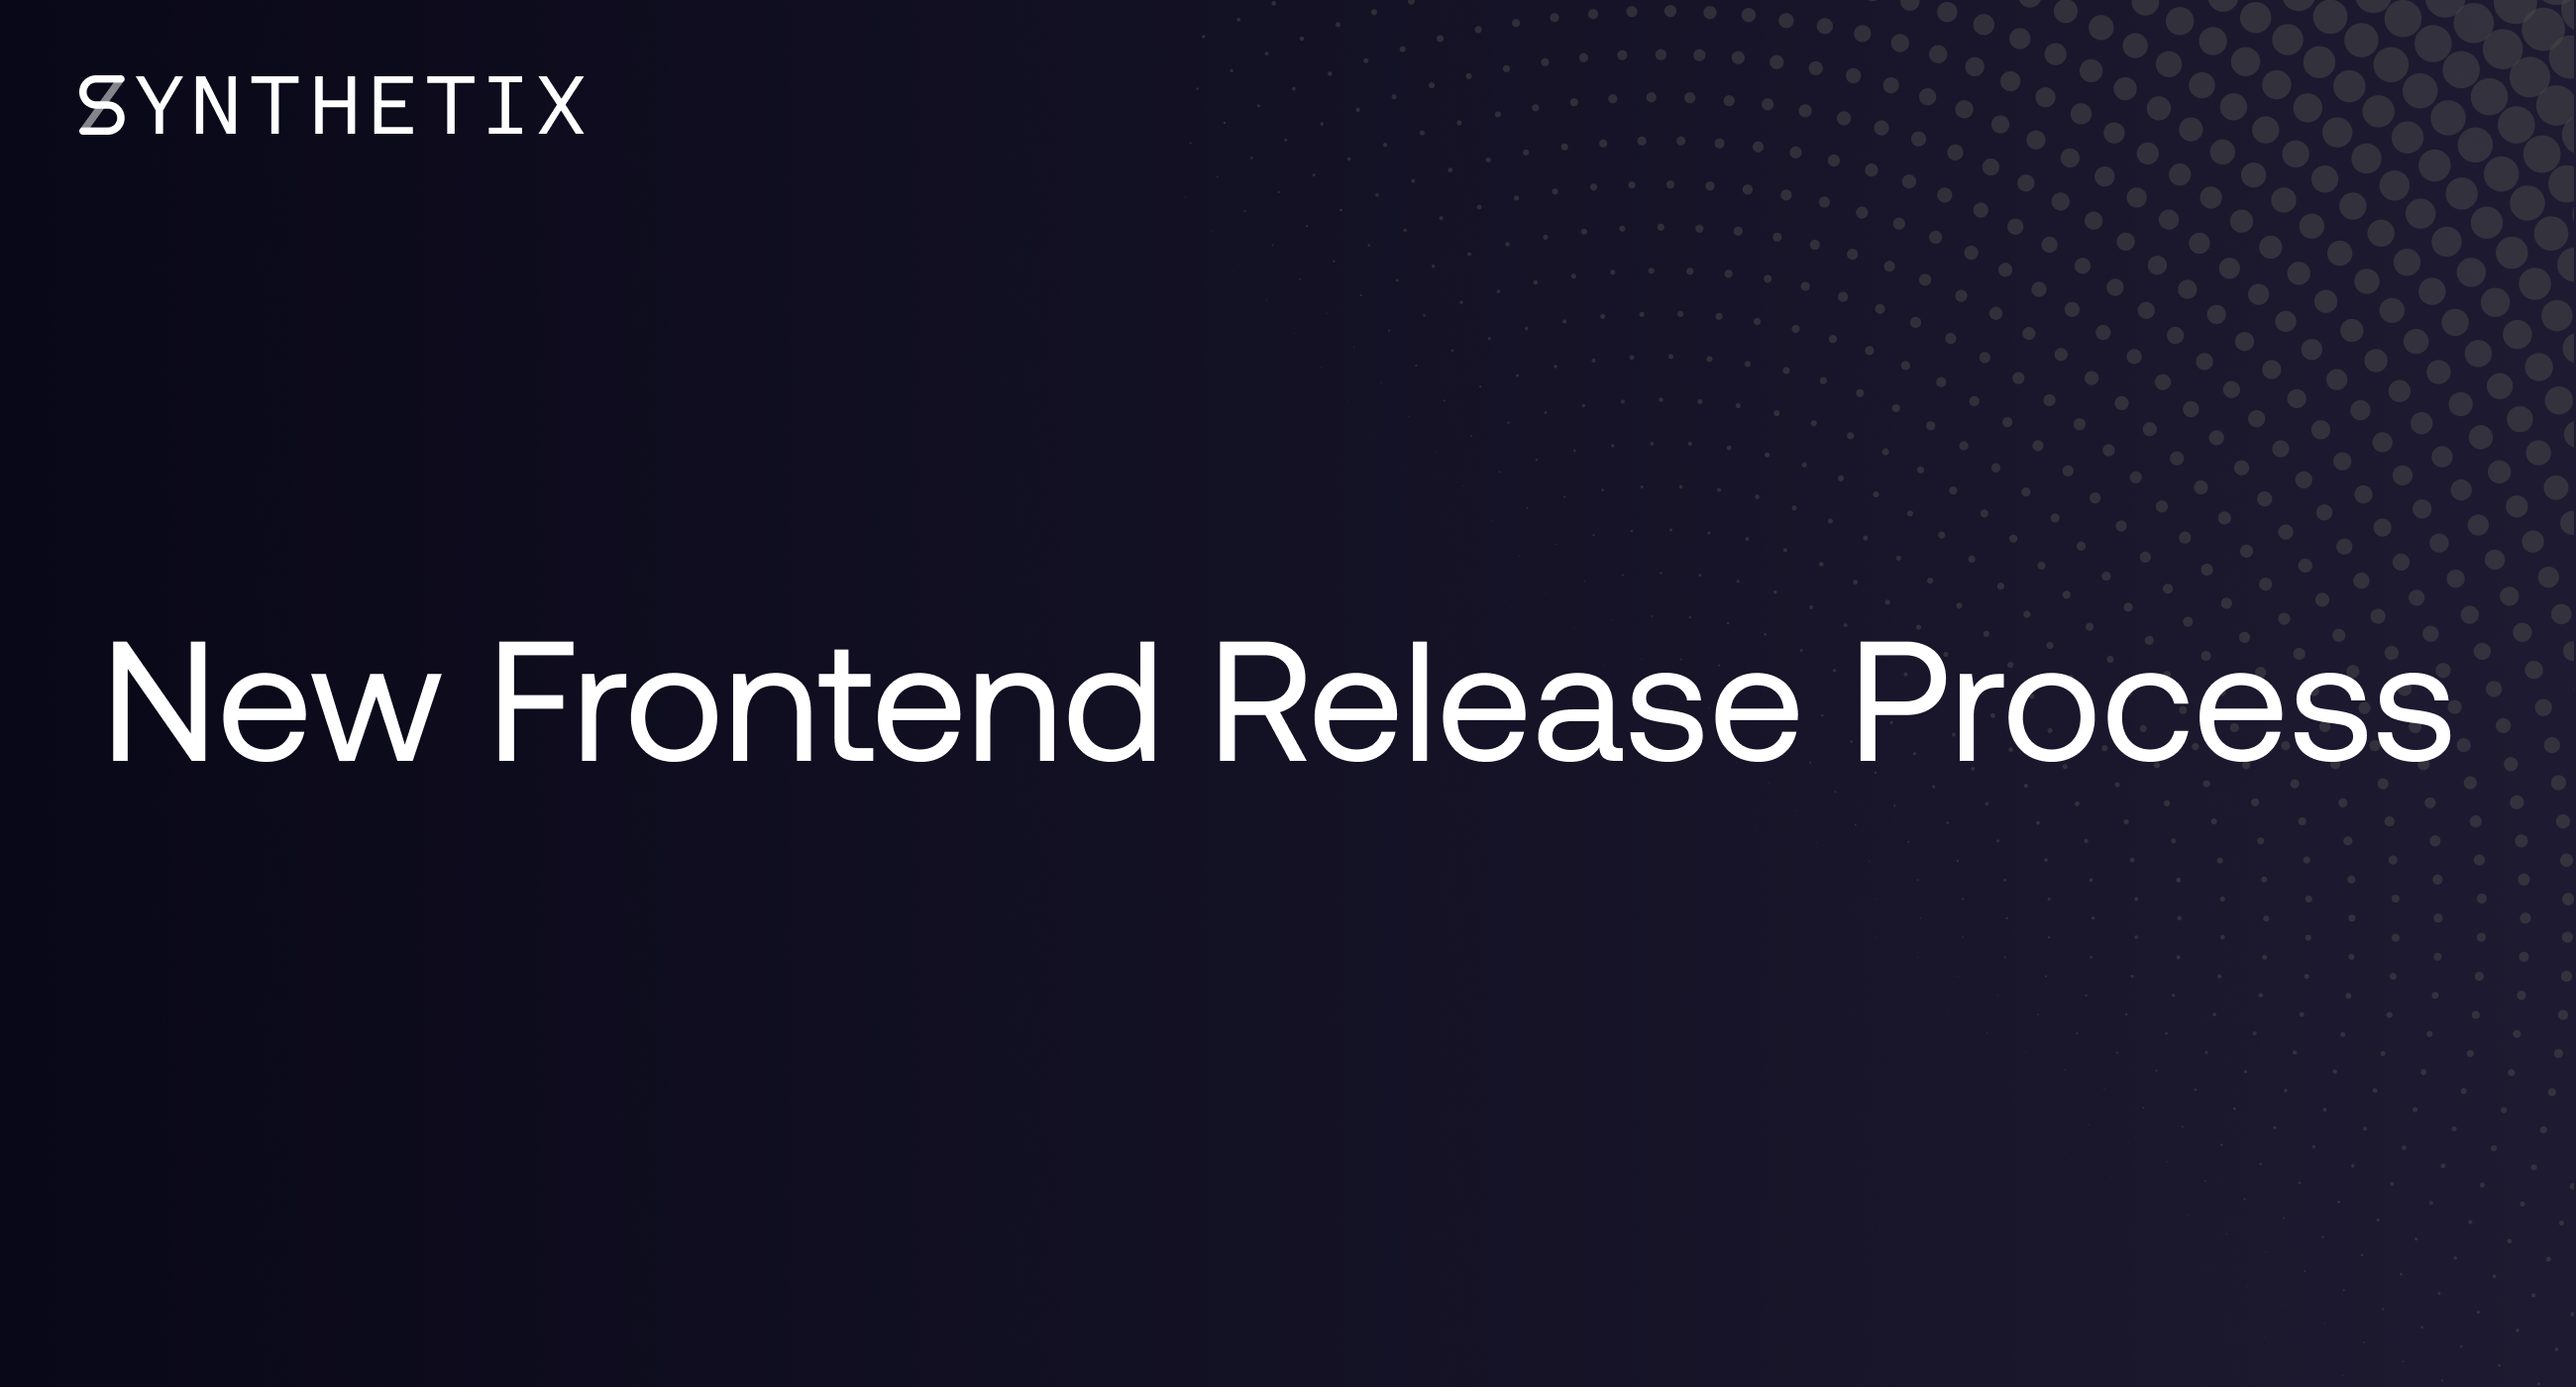 New Frontend Release Process